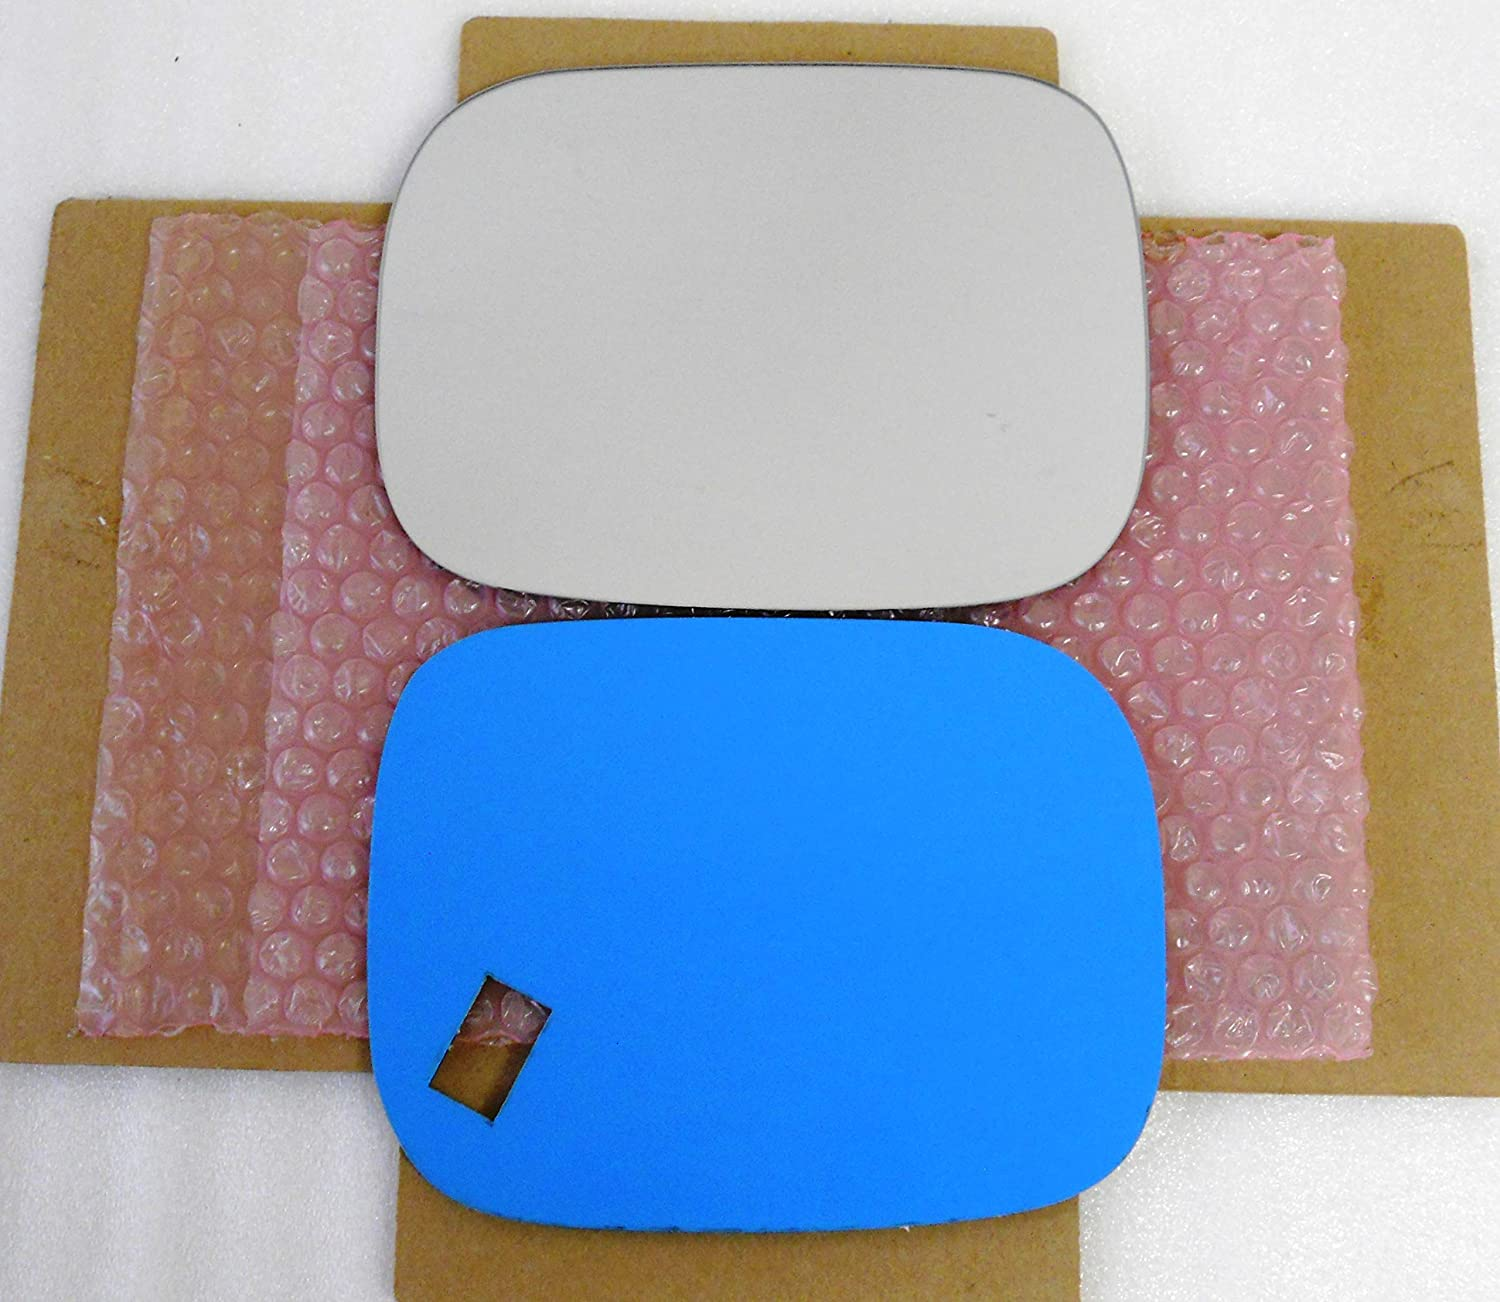 Popular overseas New Replacement Mirror Glass with FULL ADHESIVE SIZE 2007 â OFFicial site for